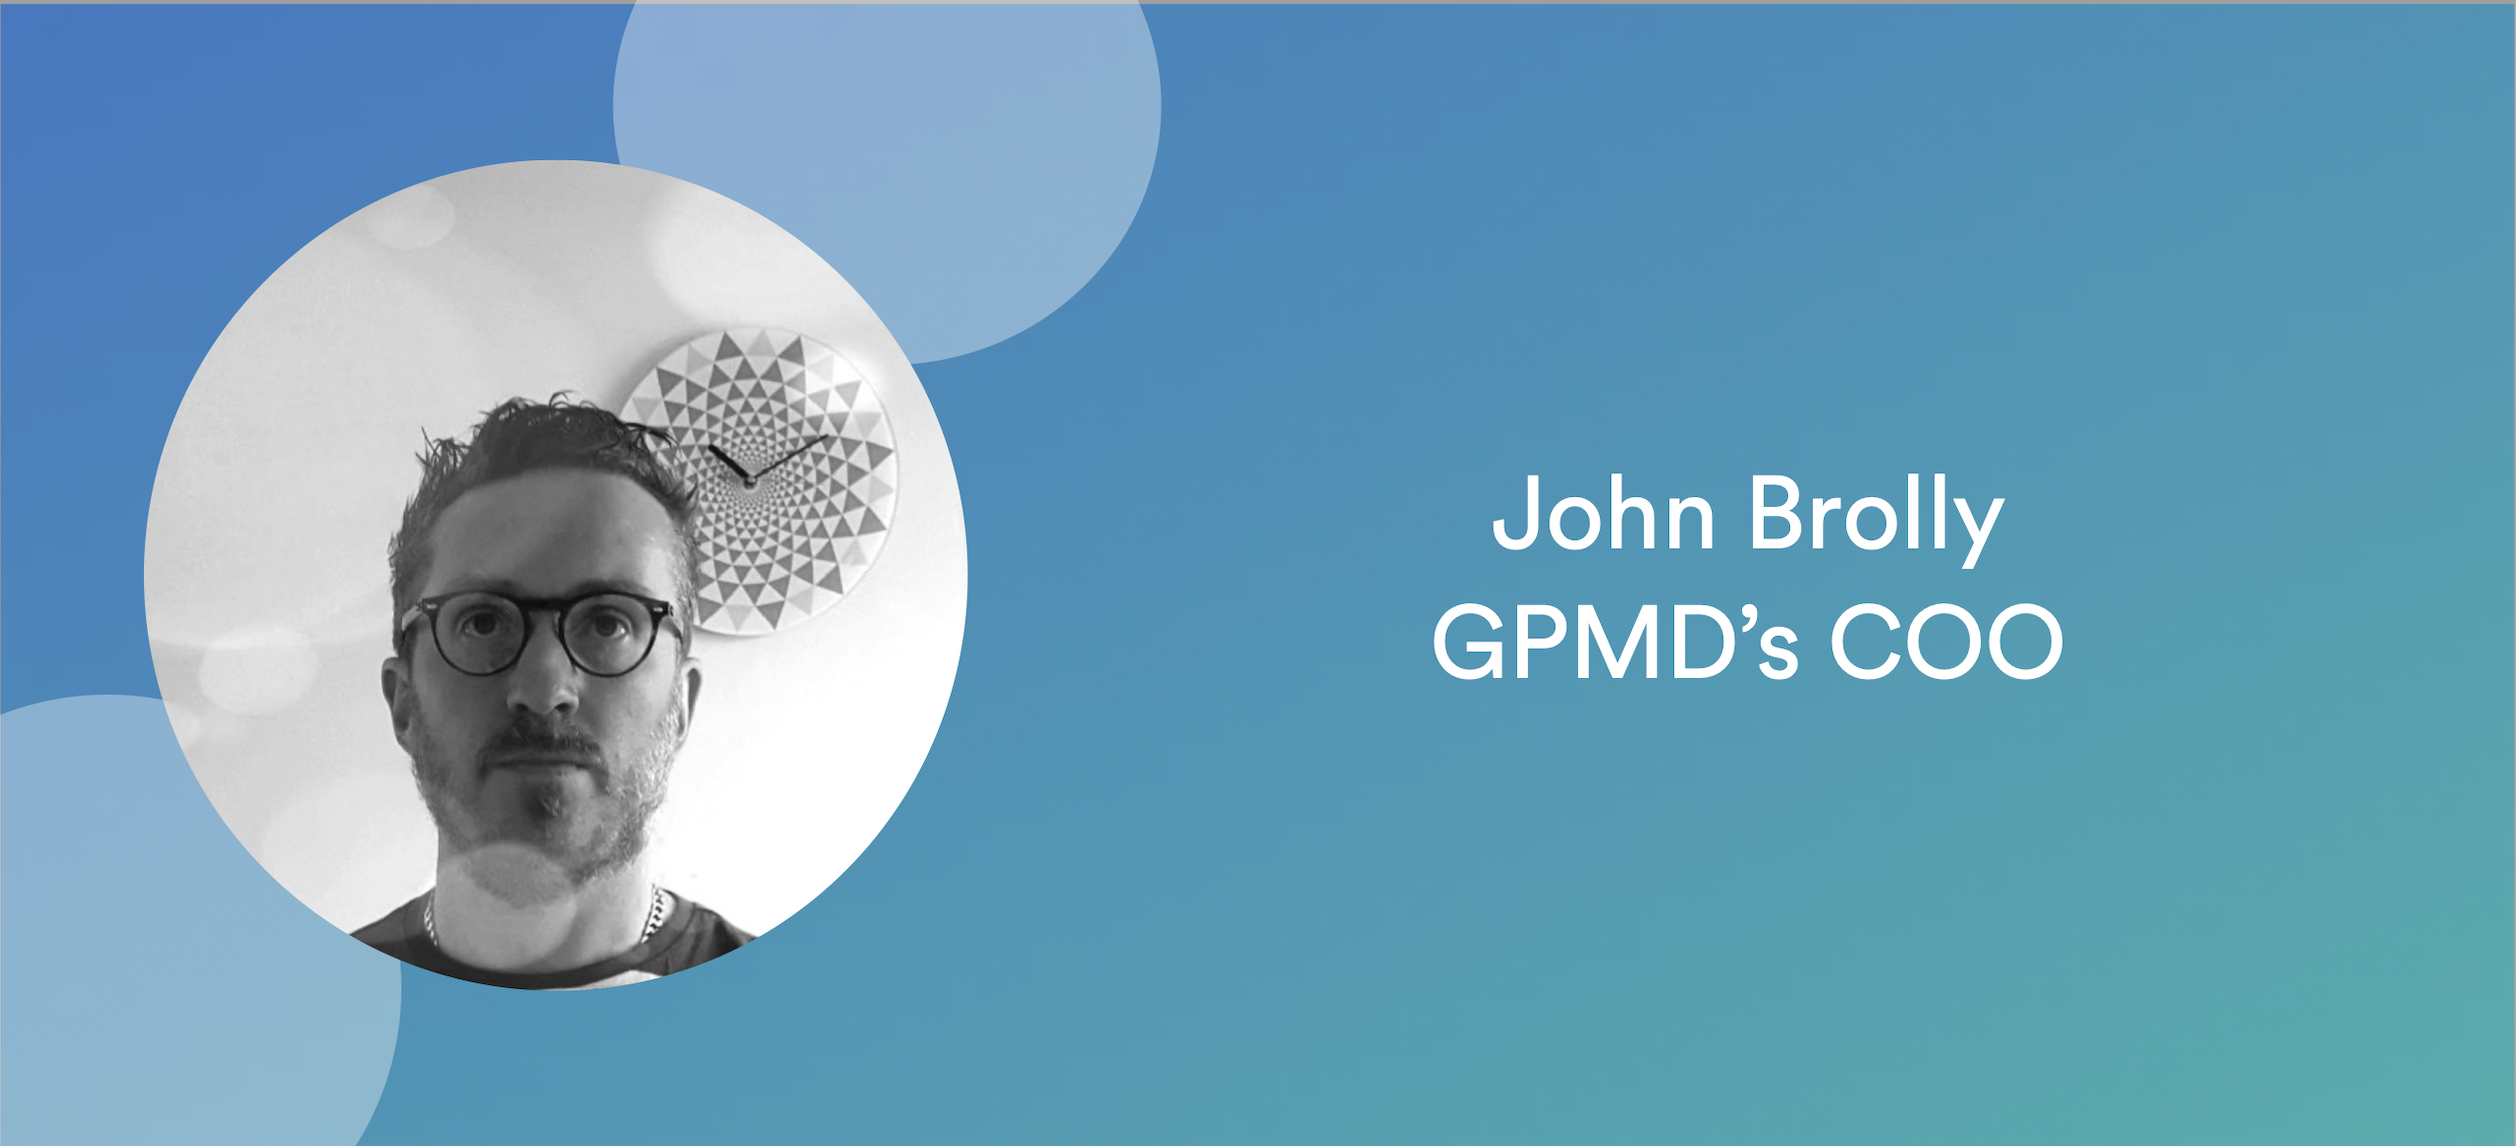 GPMD Employee Spotlight: Our COO's roadmap for growth